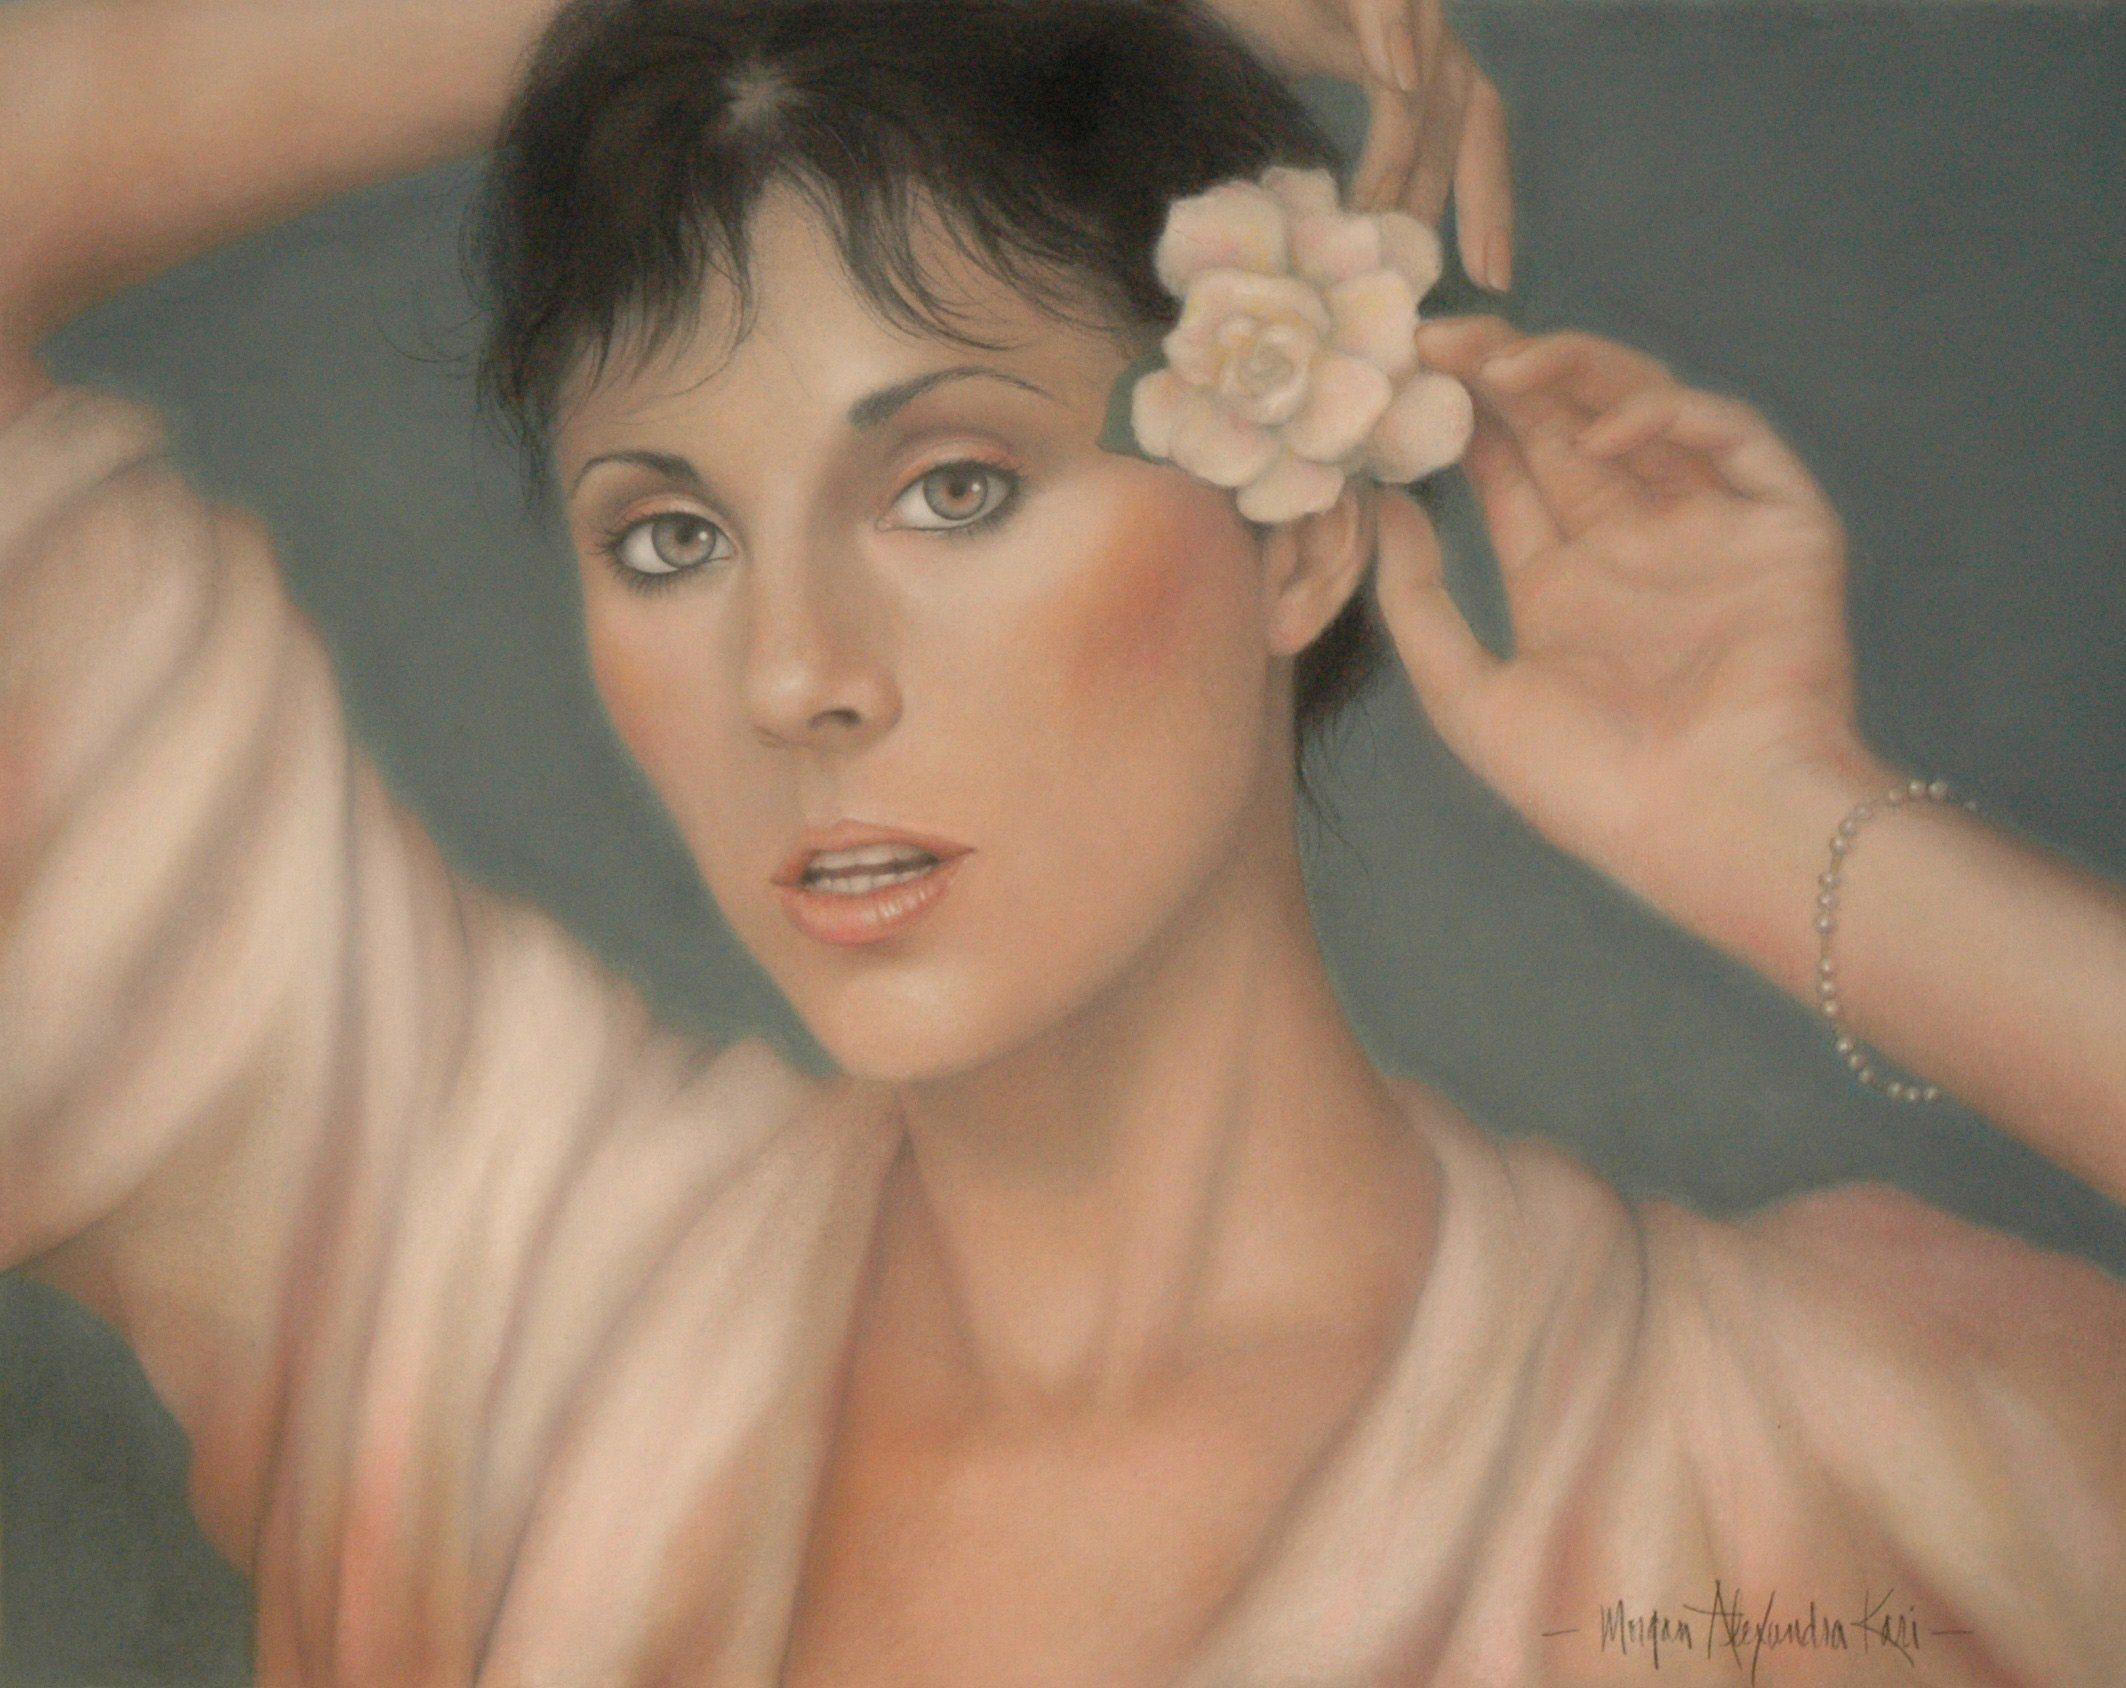 """PORTRAIT OF KAT by Morgan Alexandra Kari / framed original 18"""" x 24"""" Pastel and Pastel pencils on Canson Mi-Tientes Sky Blue paper / portrait commissions in Pastel available"""